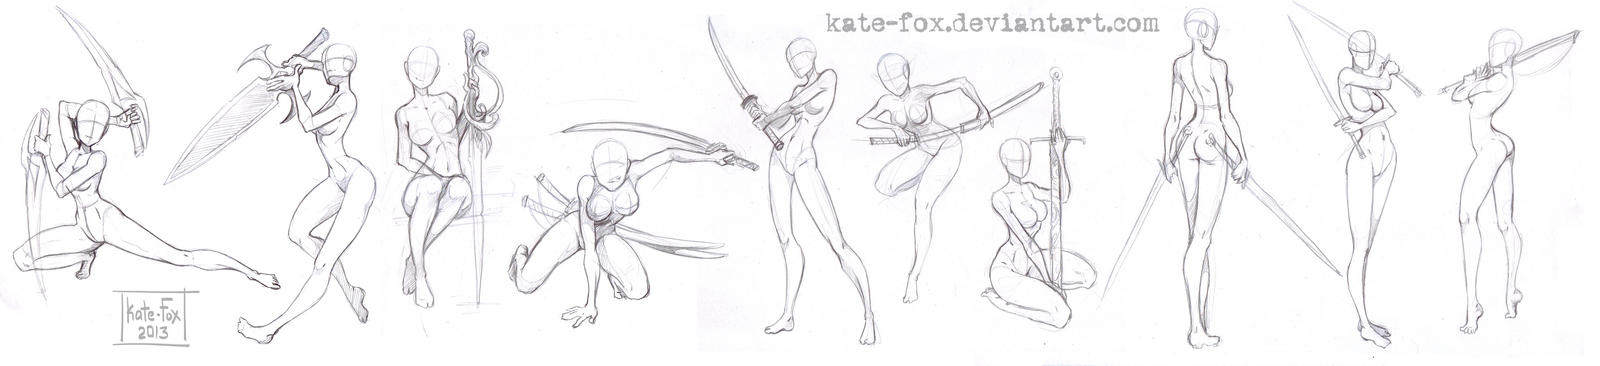 DeviantArt: More Collections Like Hands study 3 by Kate-FoX